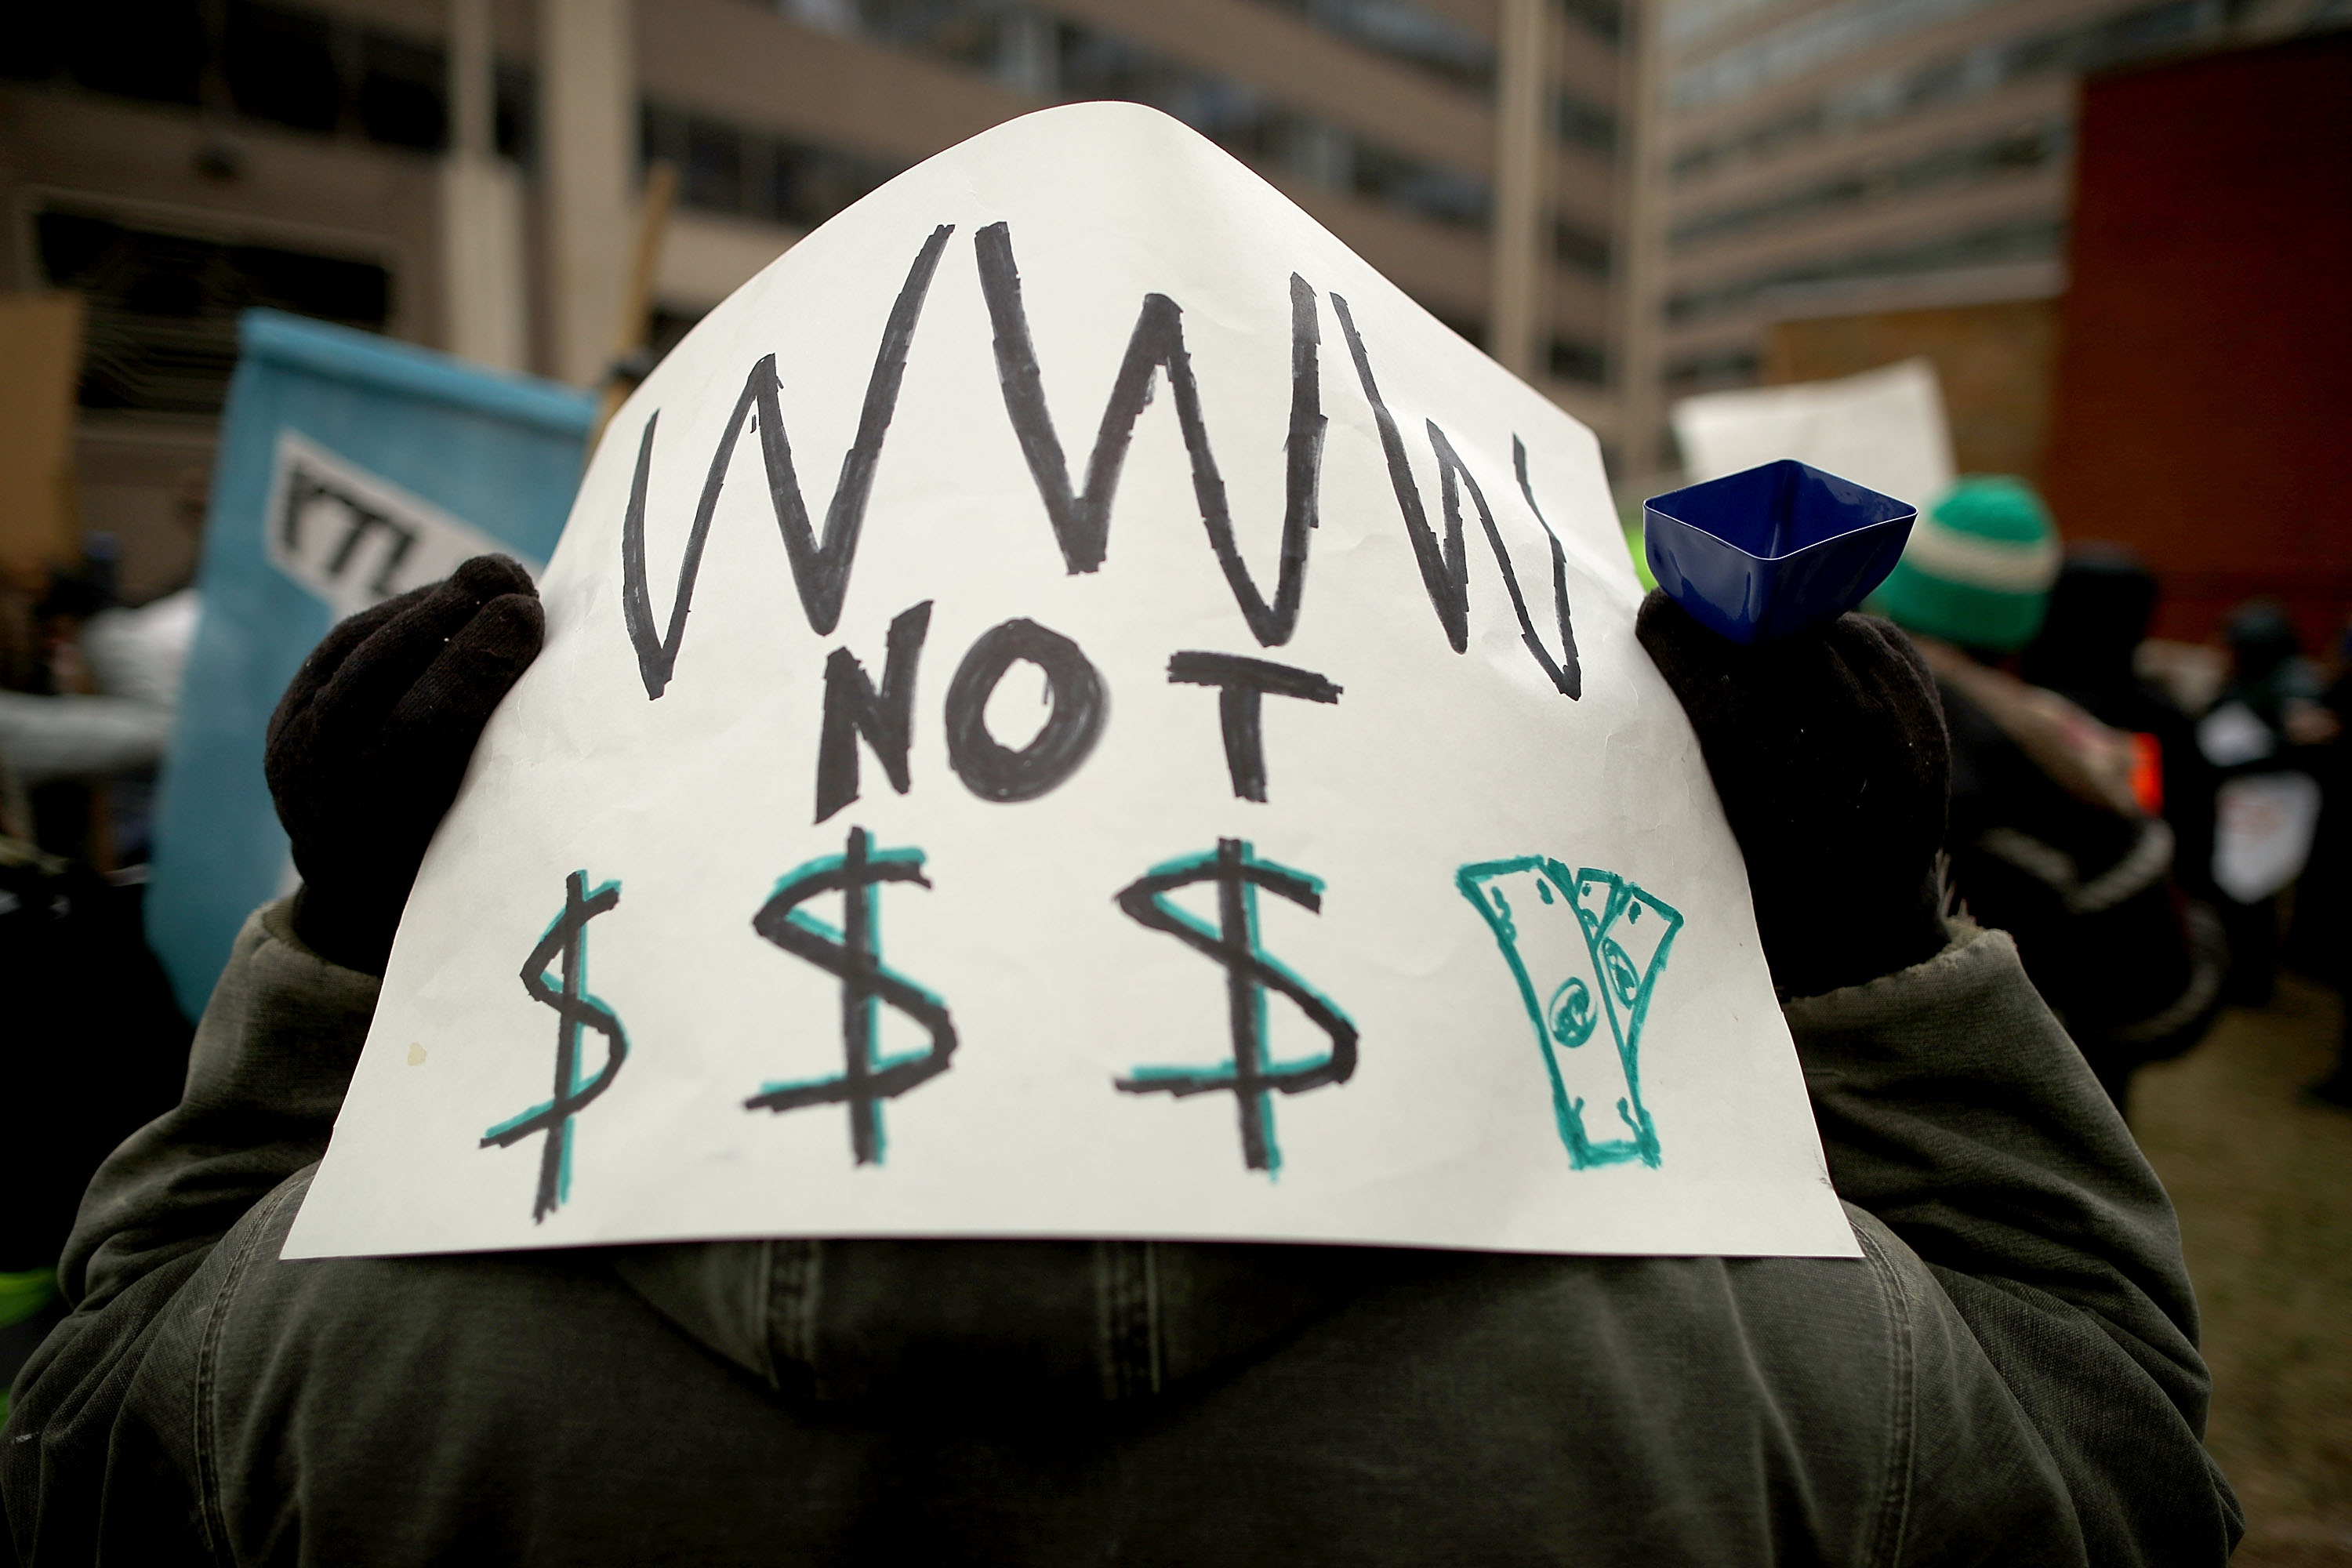 Protestors Rally At FCC Against Repeal Of Net Neutrality Rules